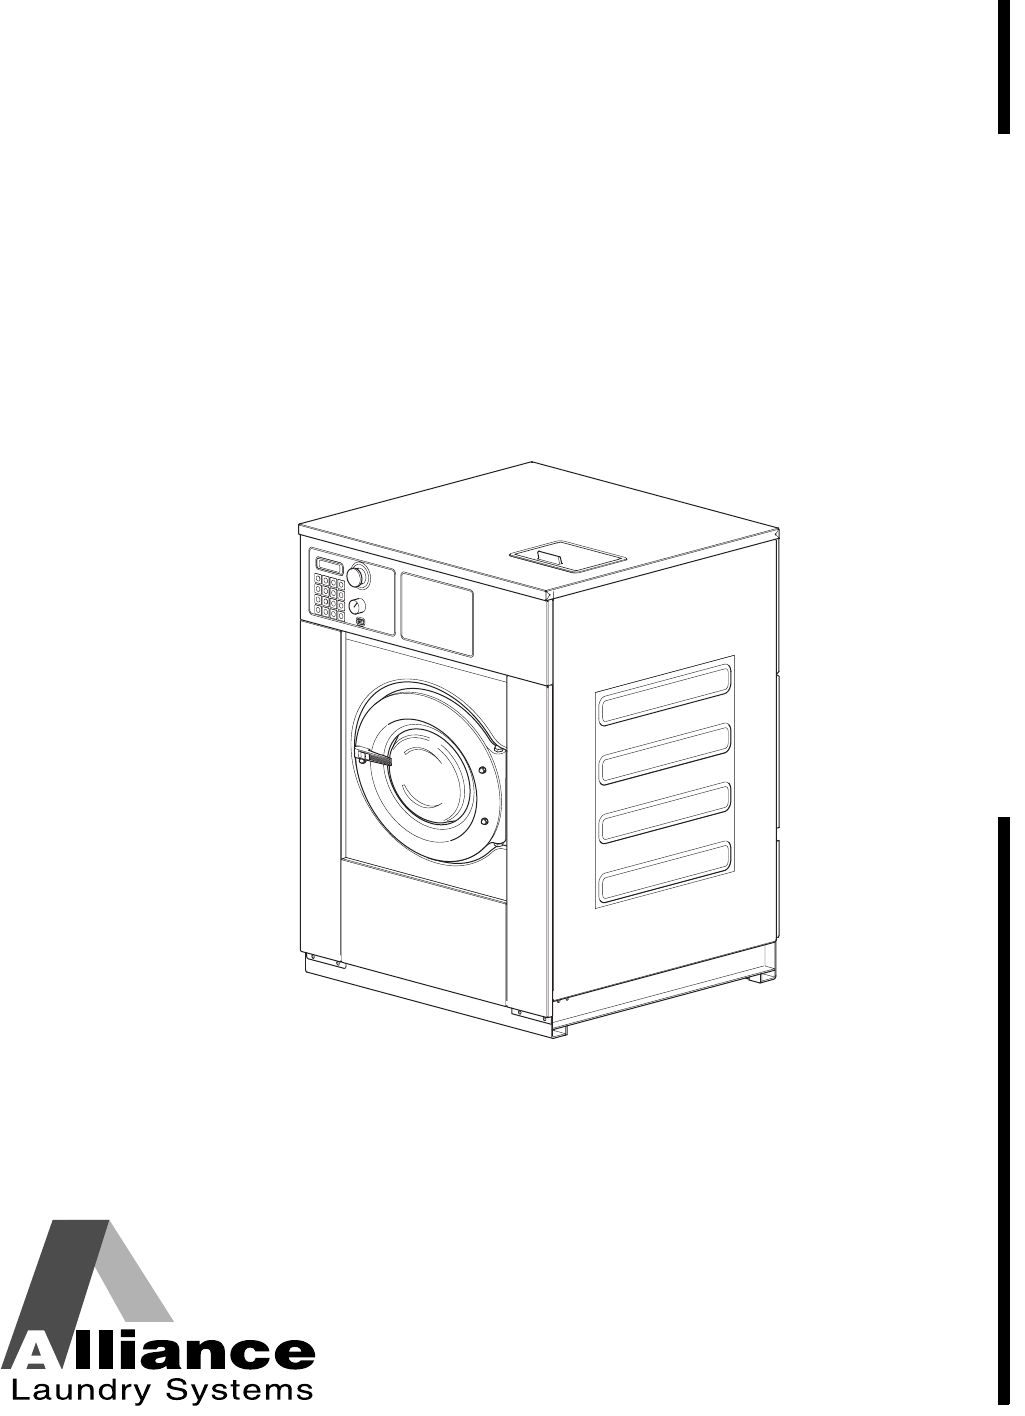 Alliance laundry systems washer dryer cpd6c user guide for Alliance laundry systems